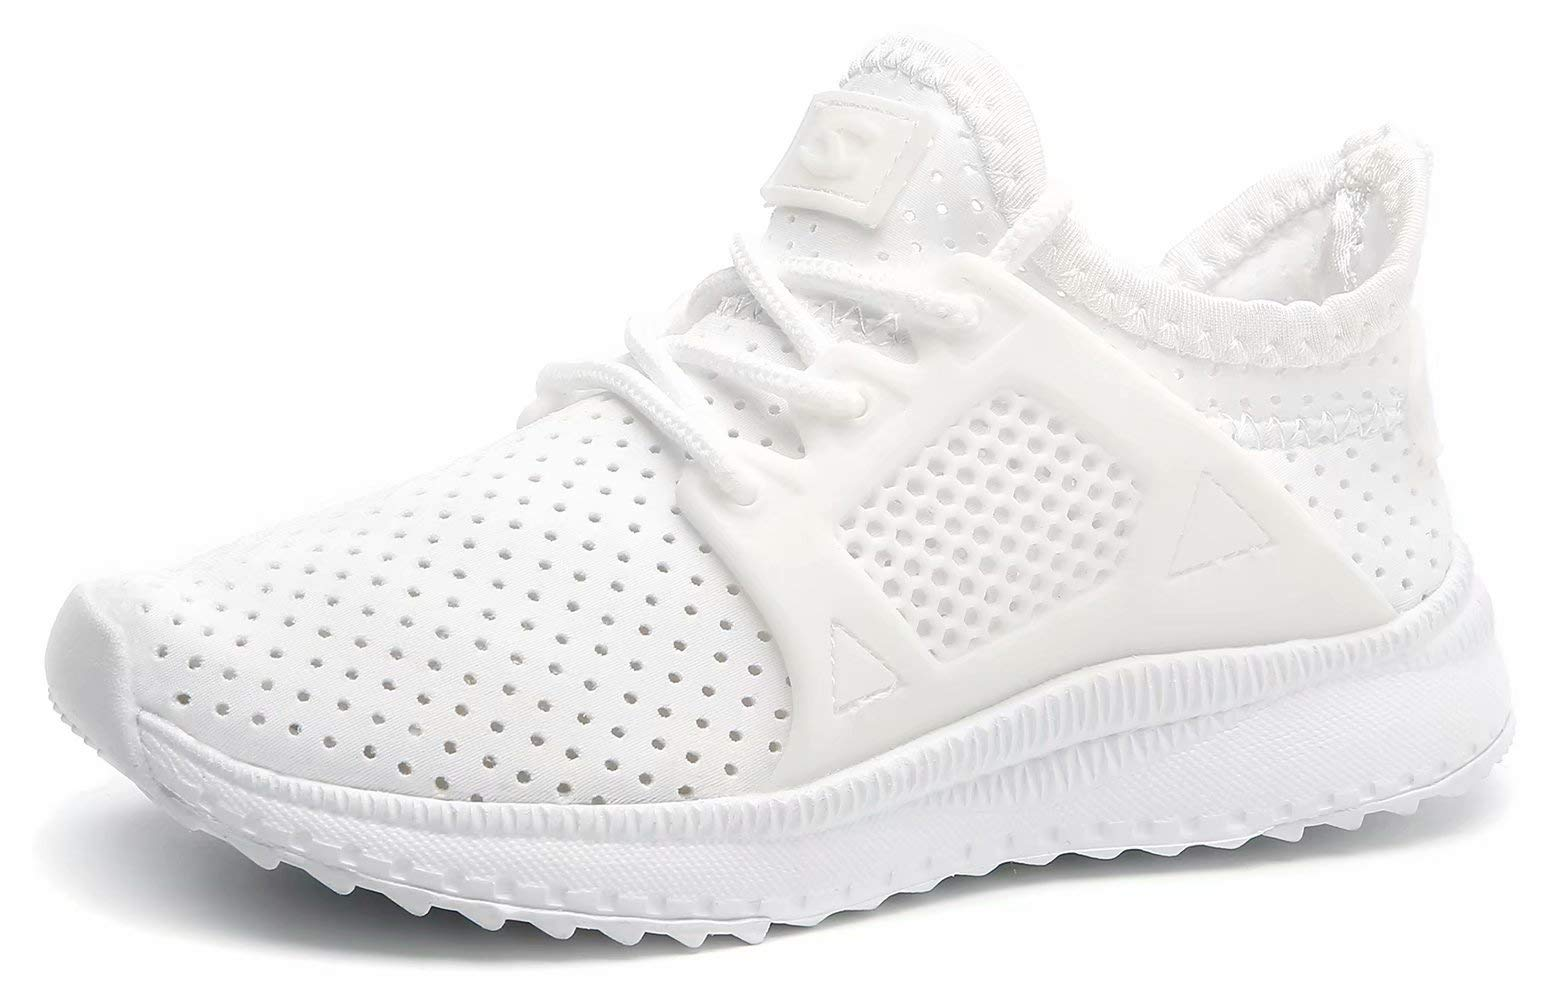 BODATU Kids Boys Girls Running Shoes Breathable Casual Lightweight Hollow Out Slip on Sneakers White 30